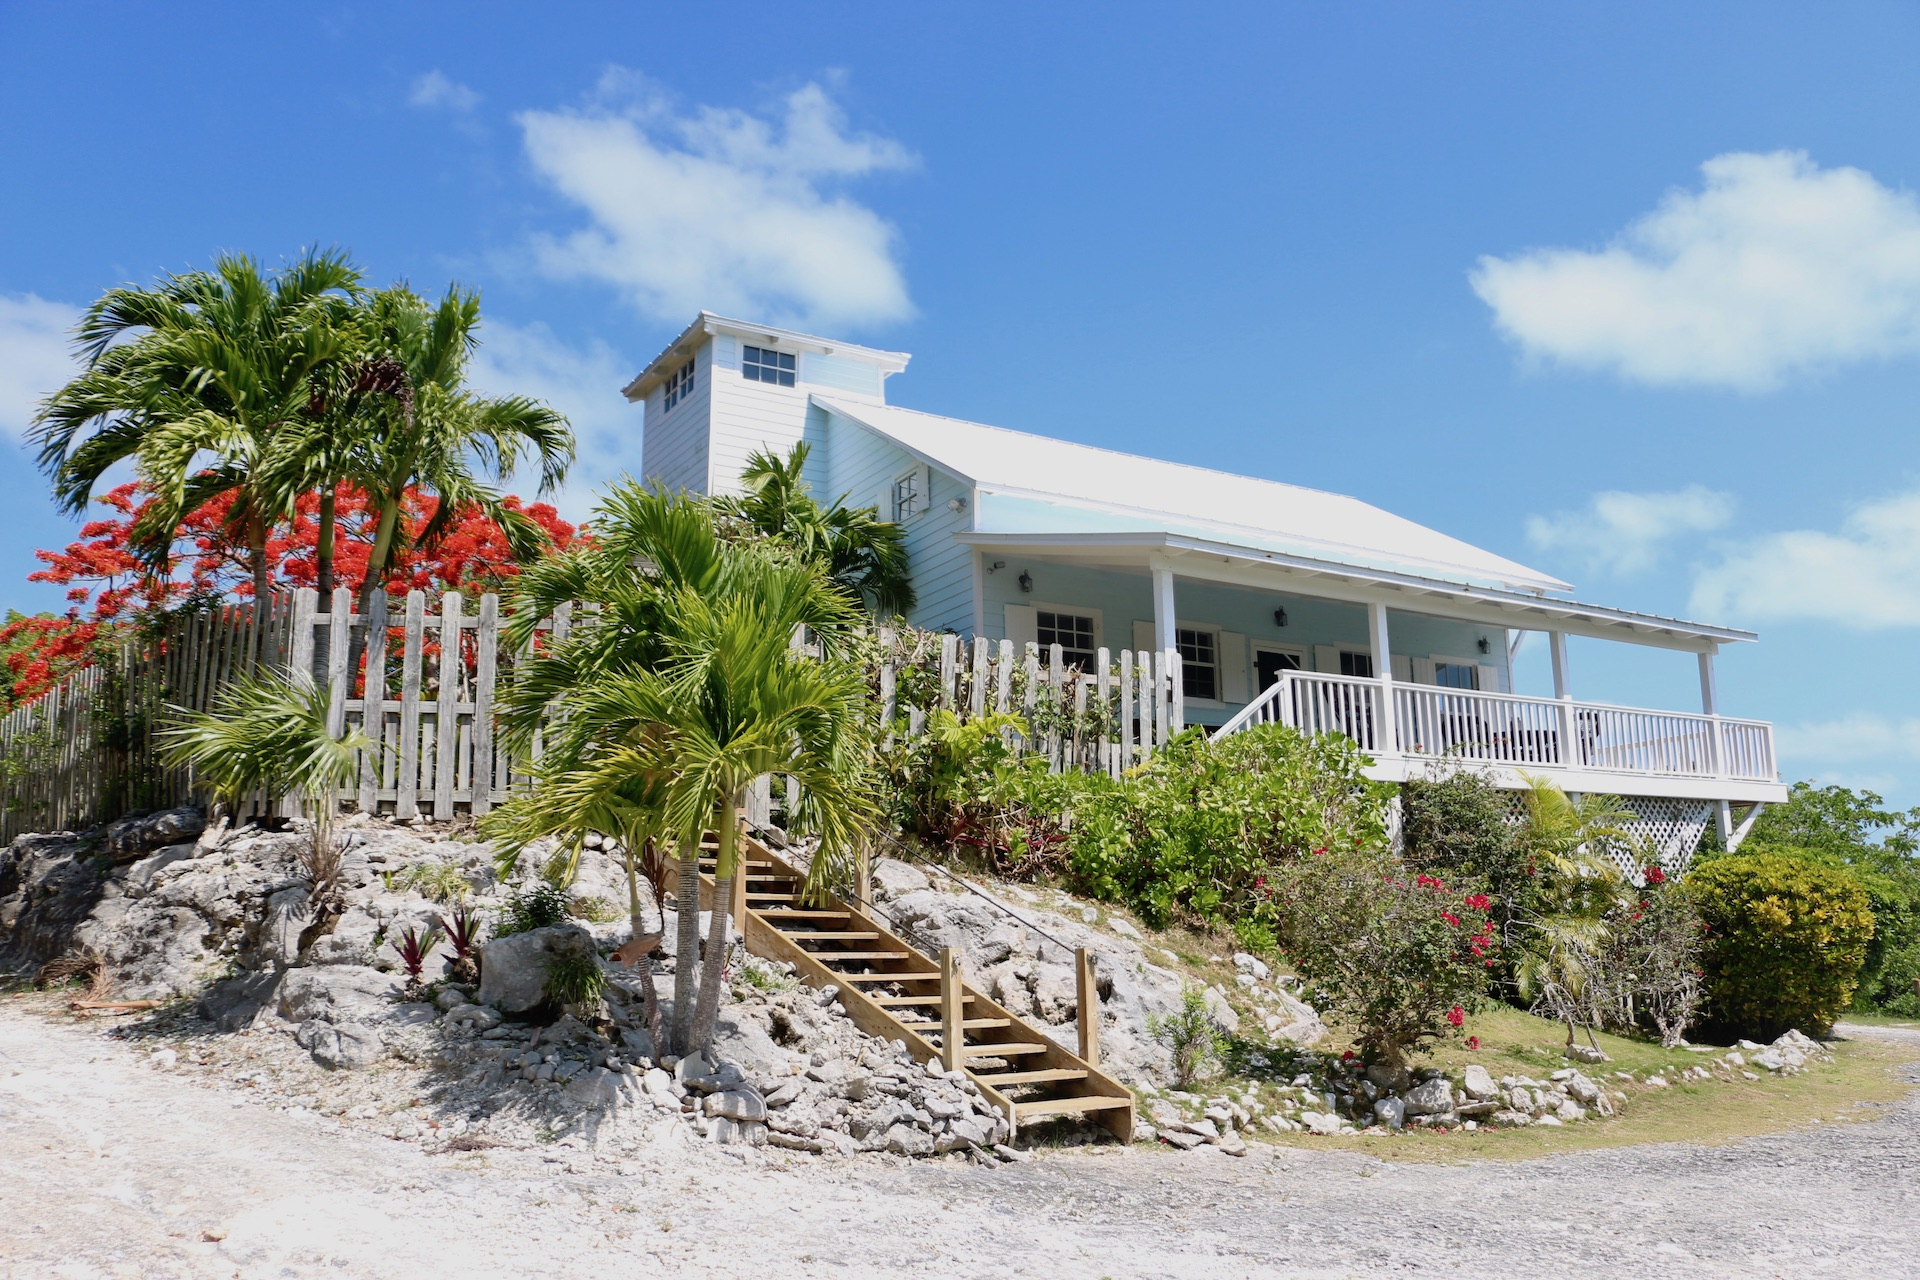 House for Sale in Abaco